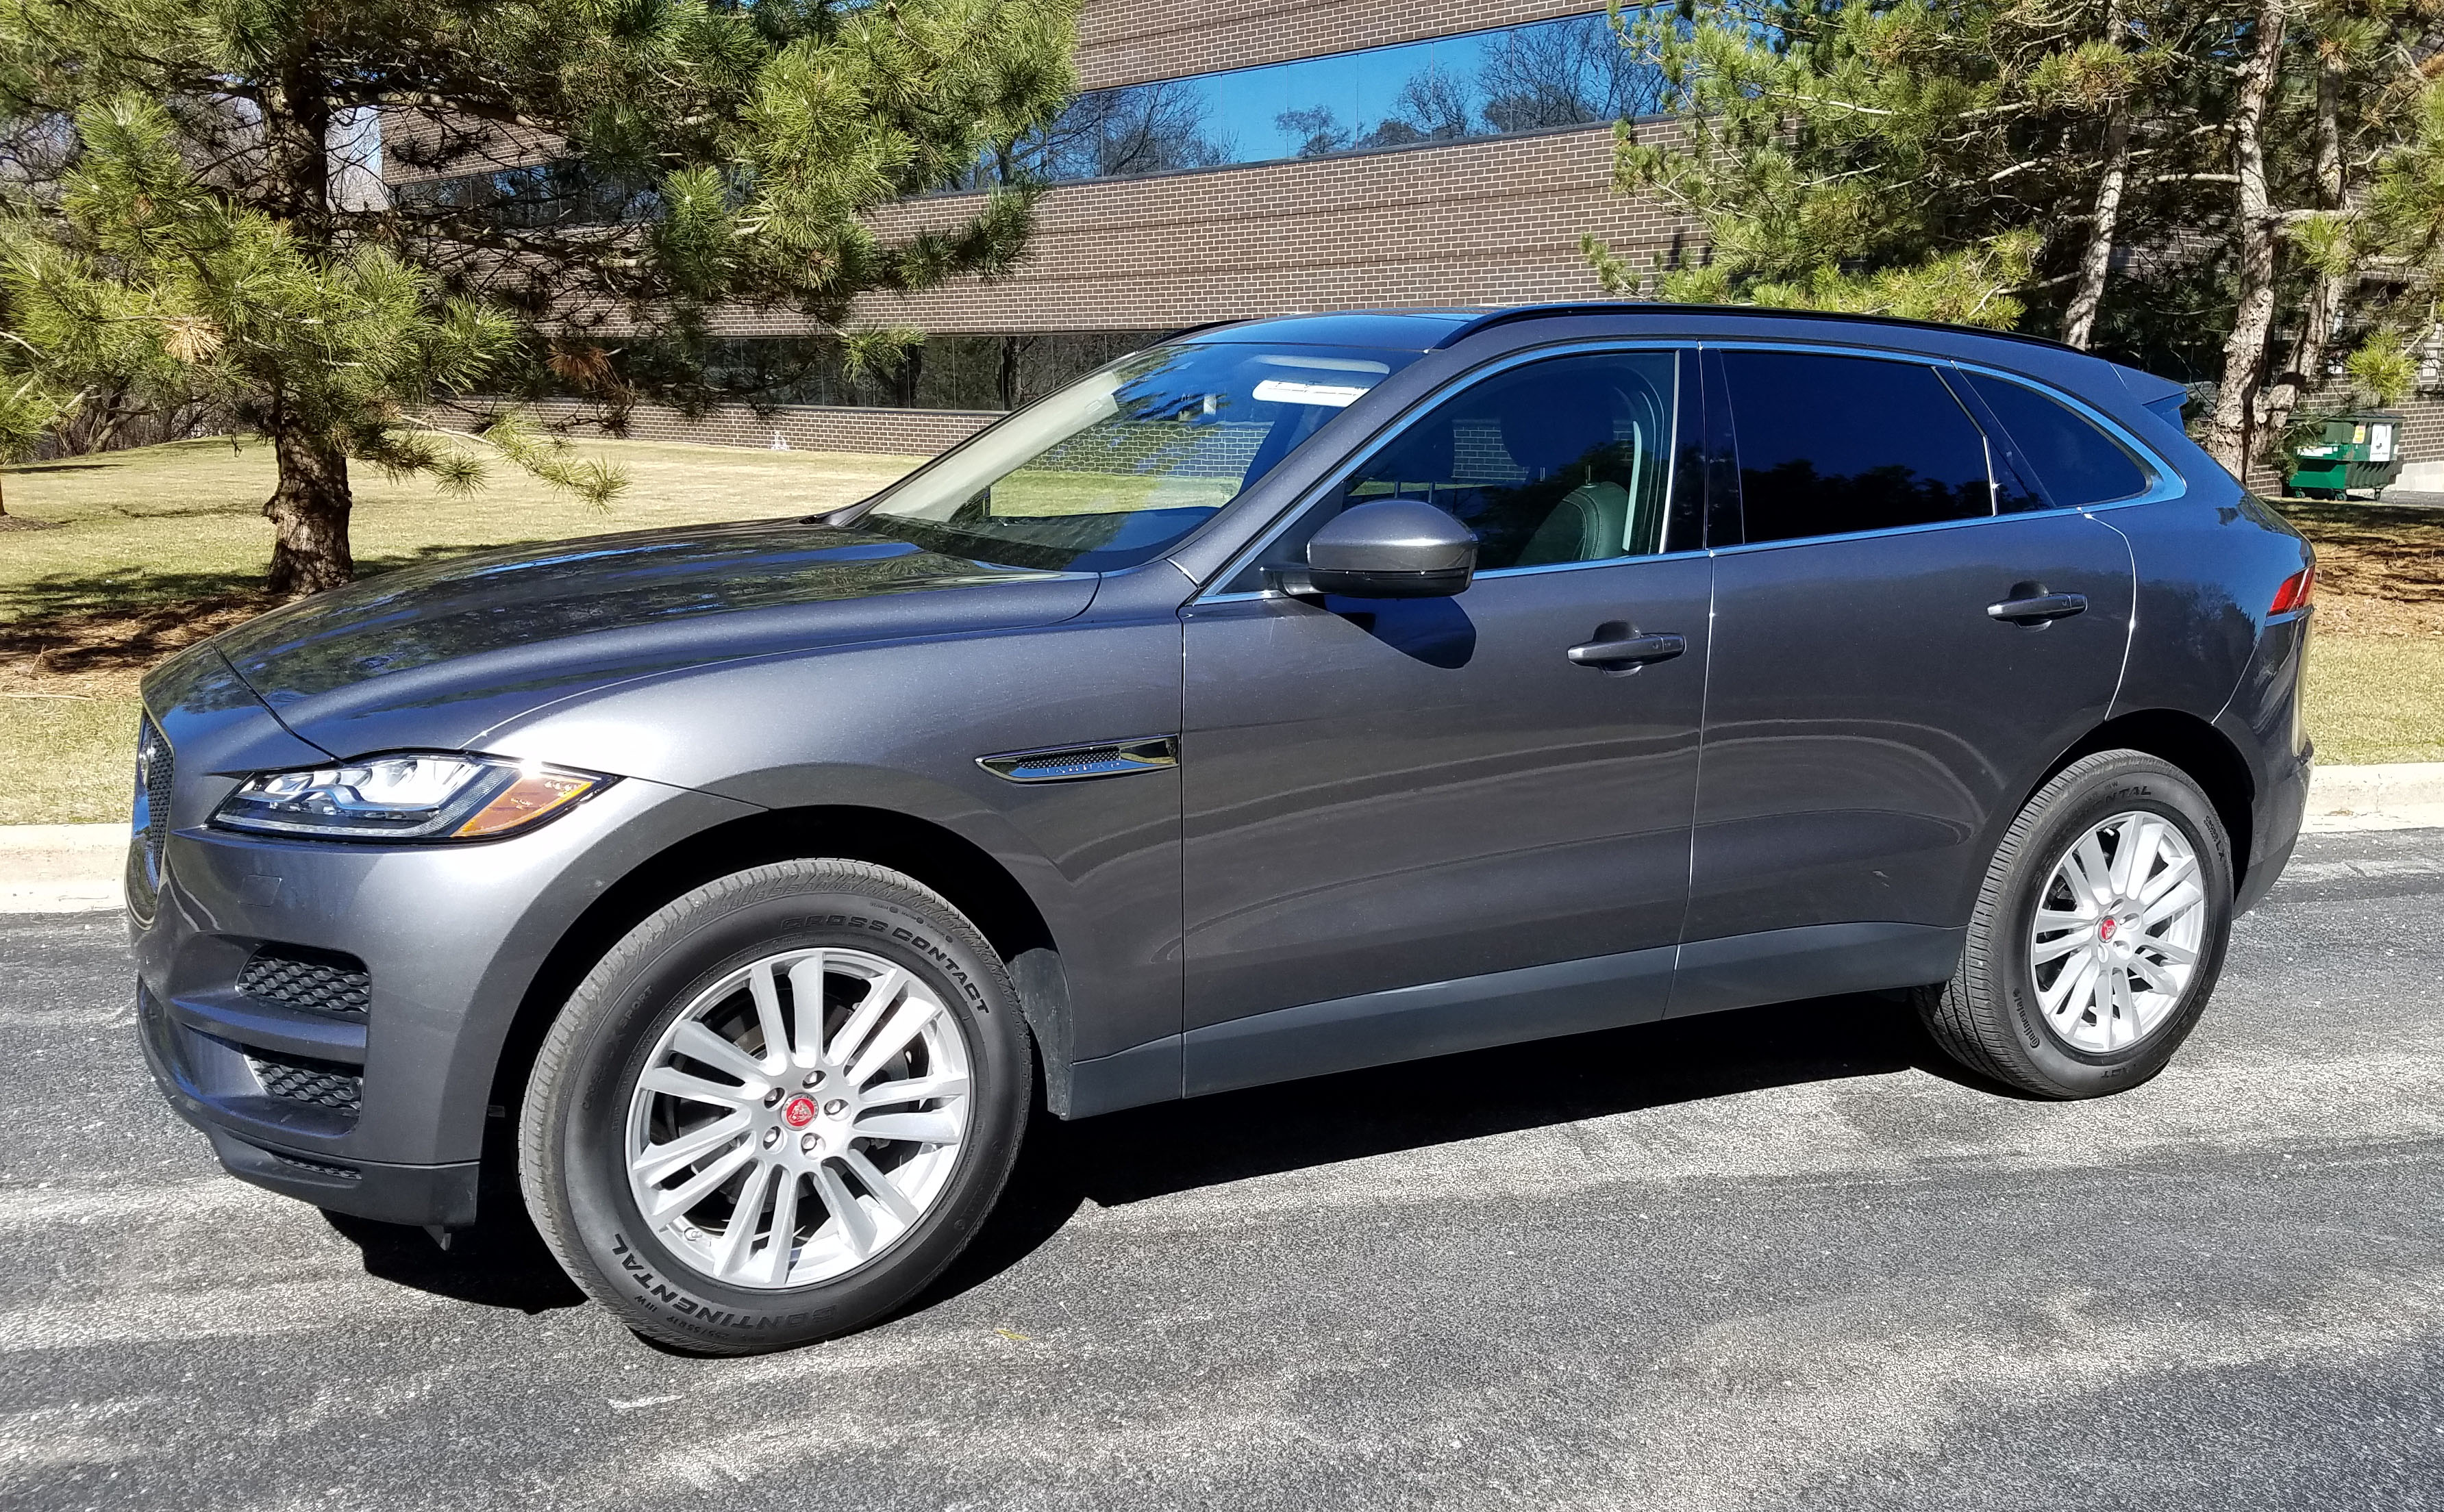 2017 jaguar f pace 20d prestige savage on wheels. Black Bedroom Furniture Sets. Home Design Ideas